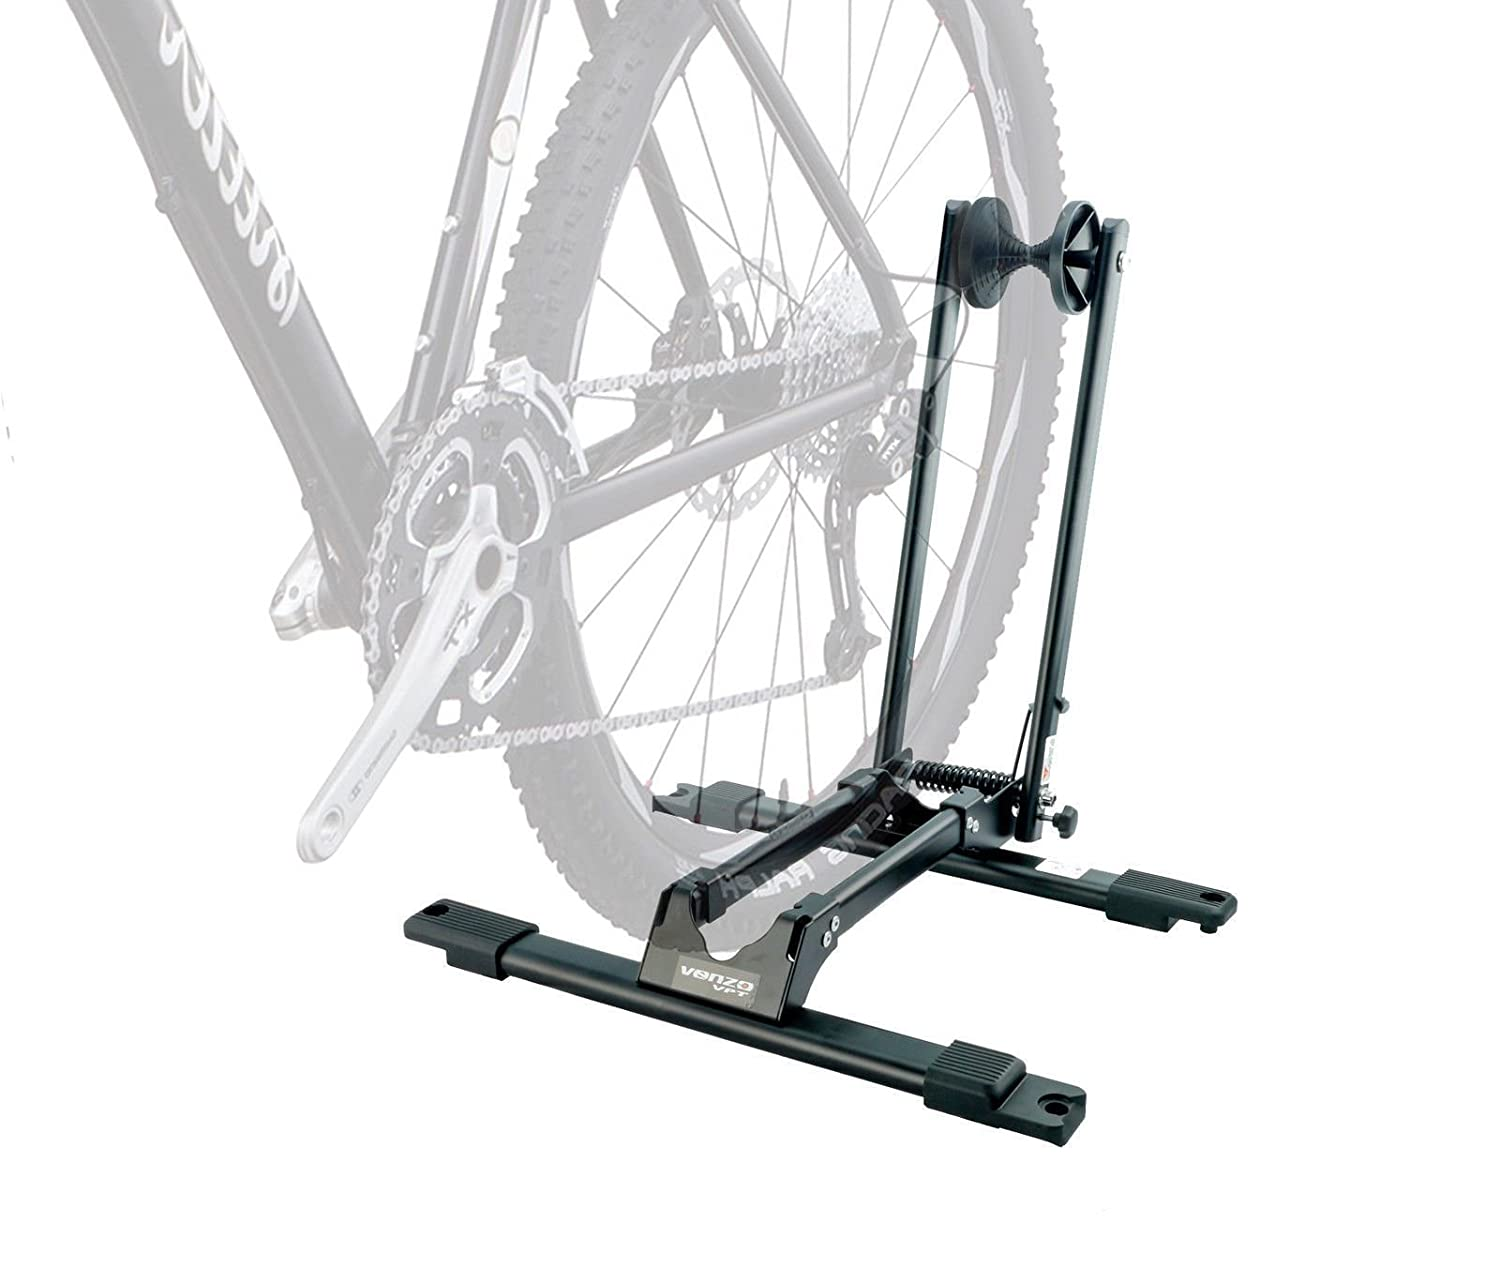 Bike Bicycle Deluxe Storage Double Supporter Floor Stand Rack by Venzo   B011NJ397C